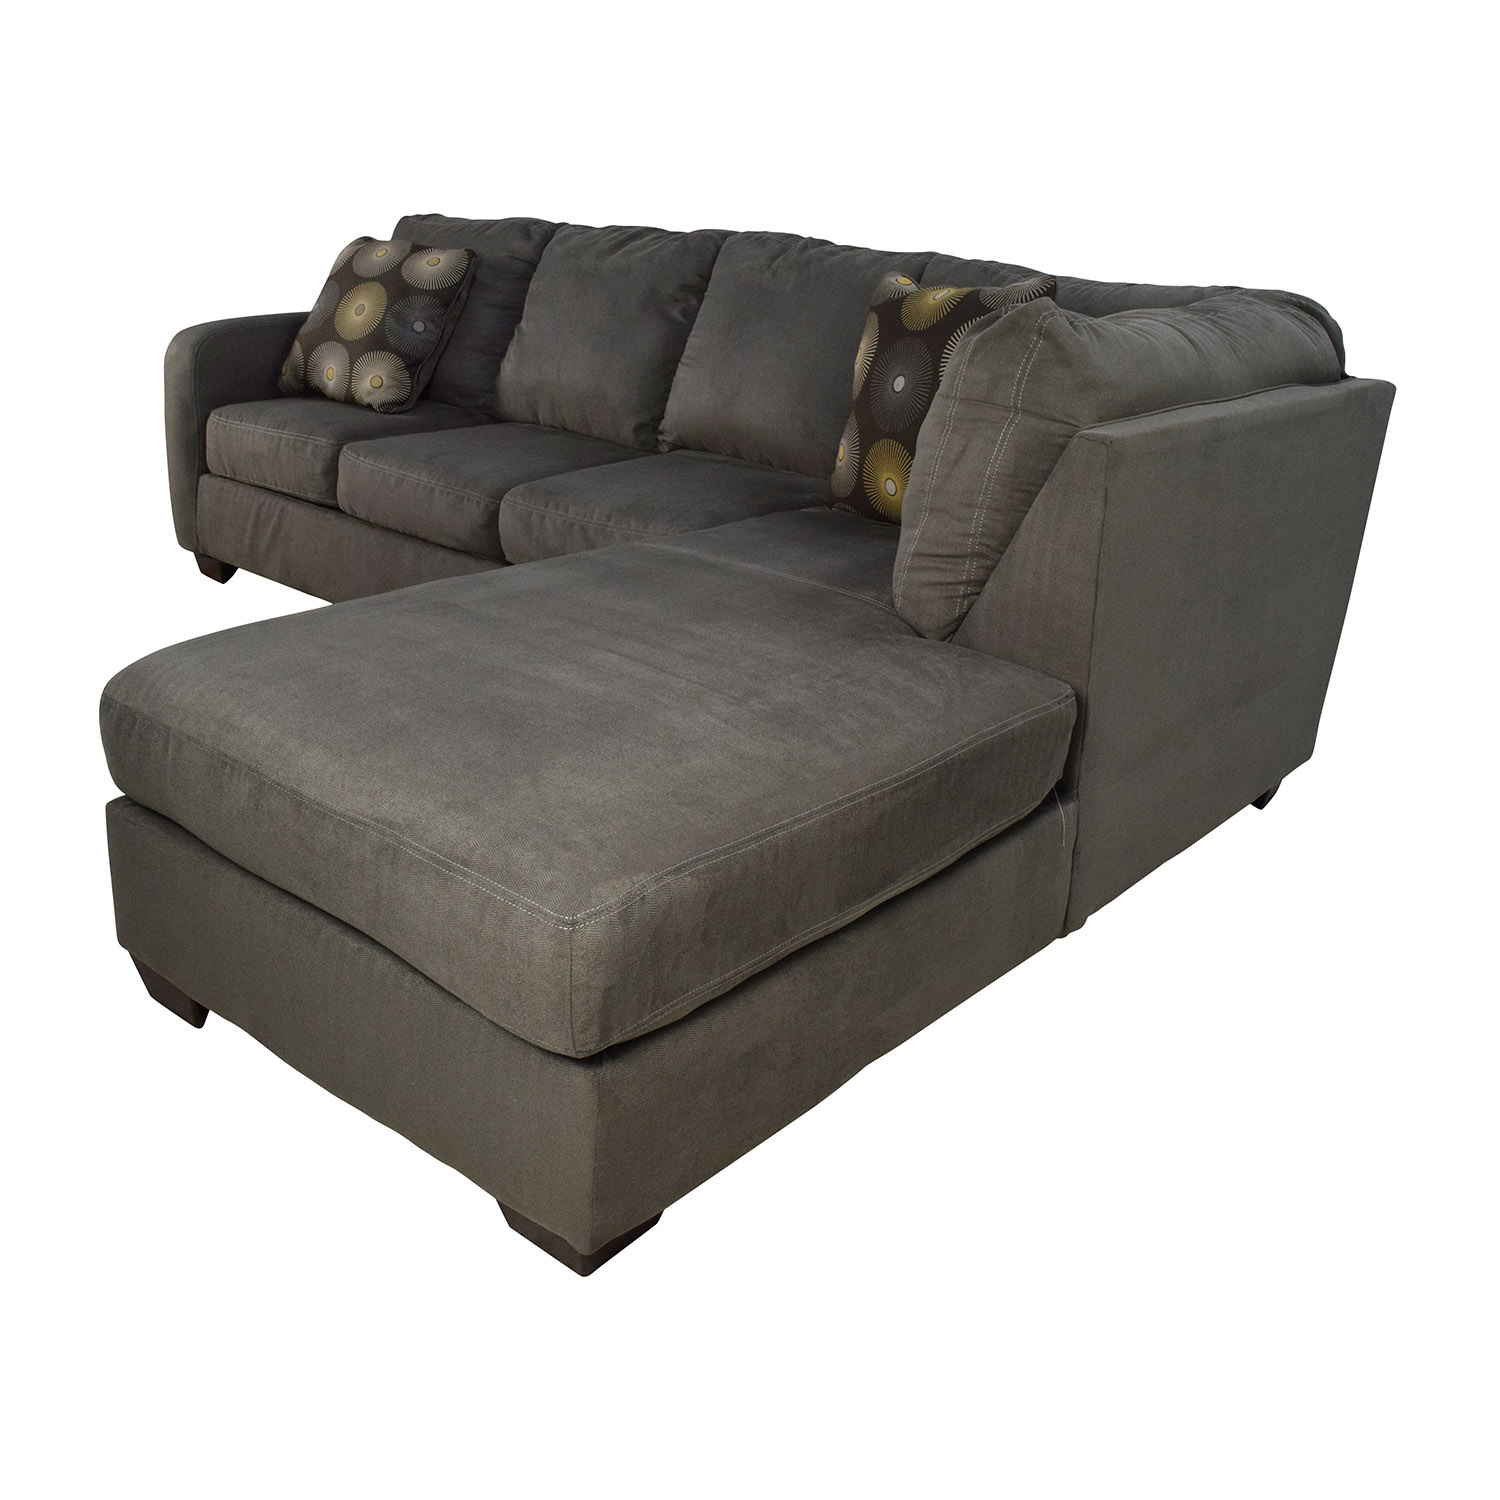 Amazing 30 Off Ashley Furniture Ashley Furniture Waverly Gray Sectional Sofa Sofas Interior Design Ideas Ghosoteloinfo